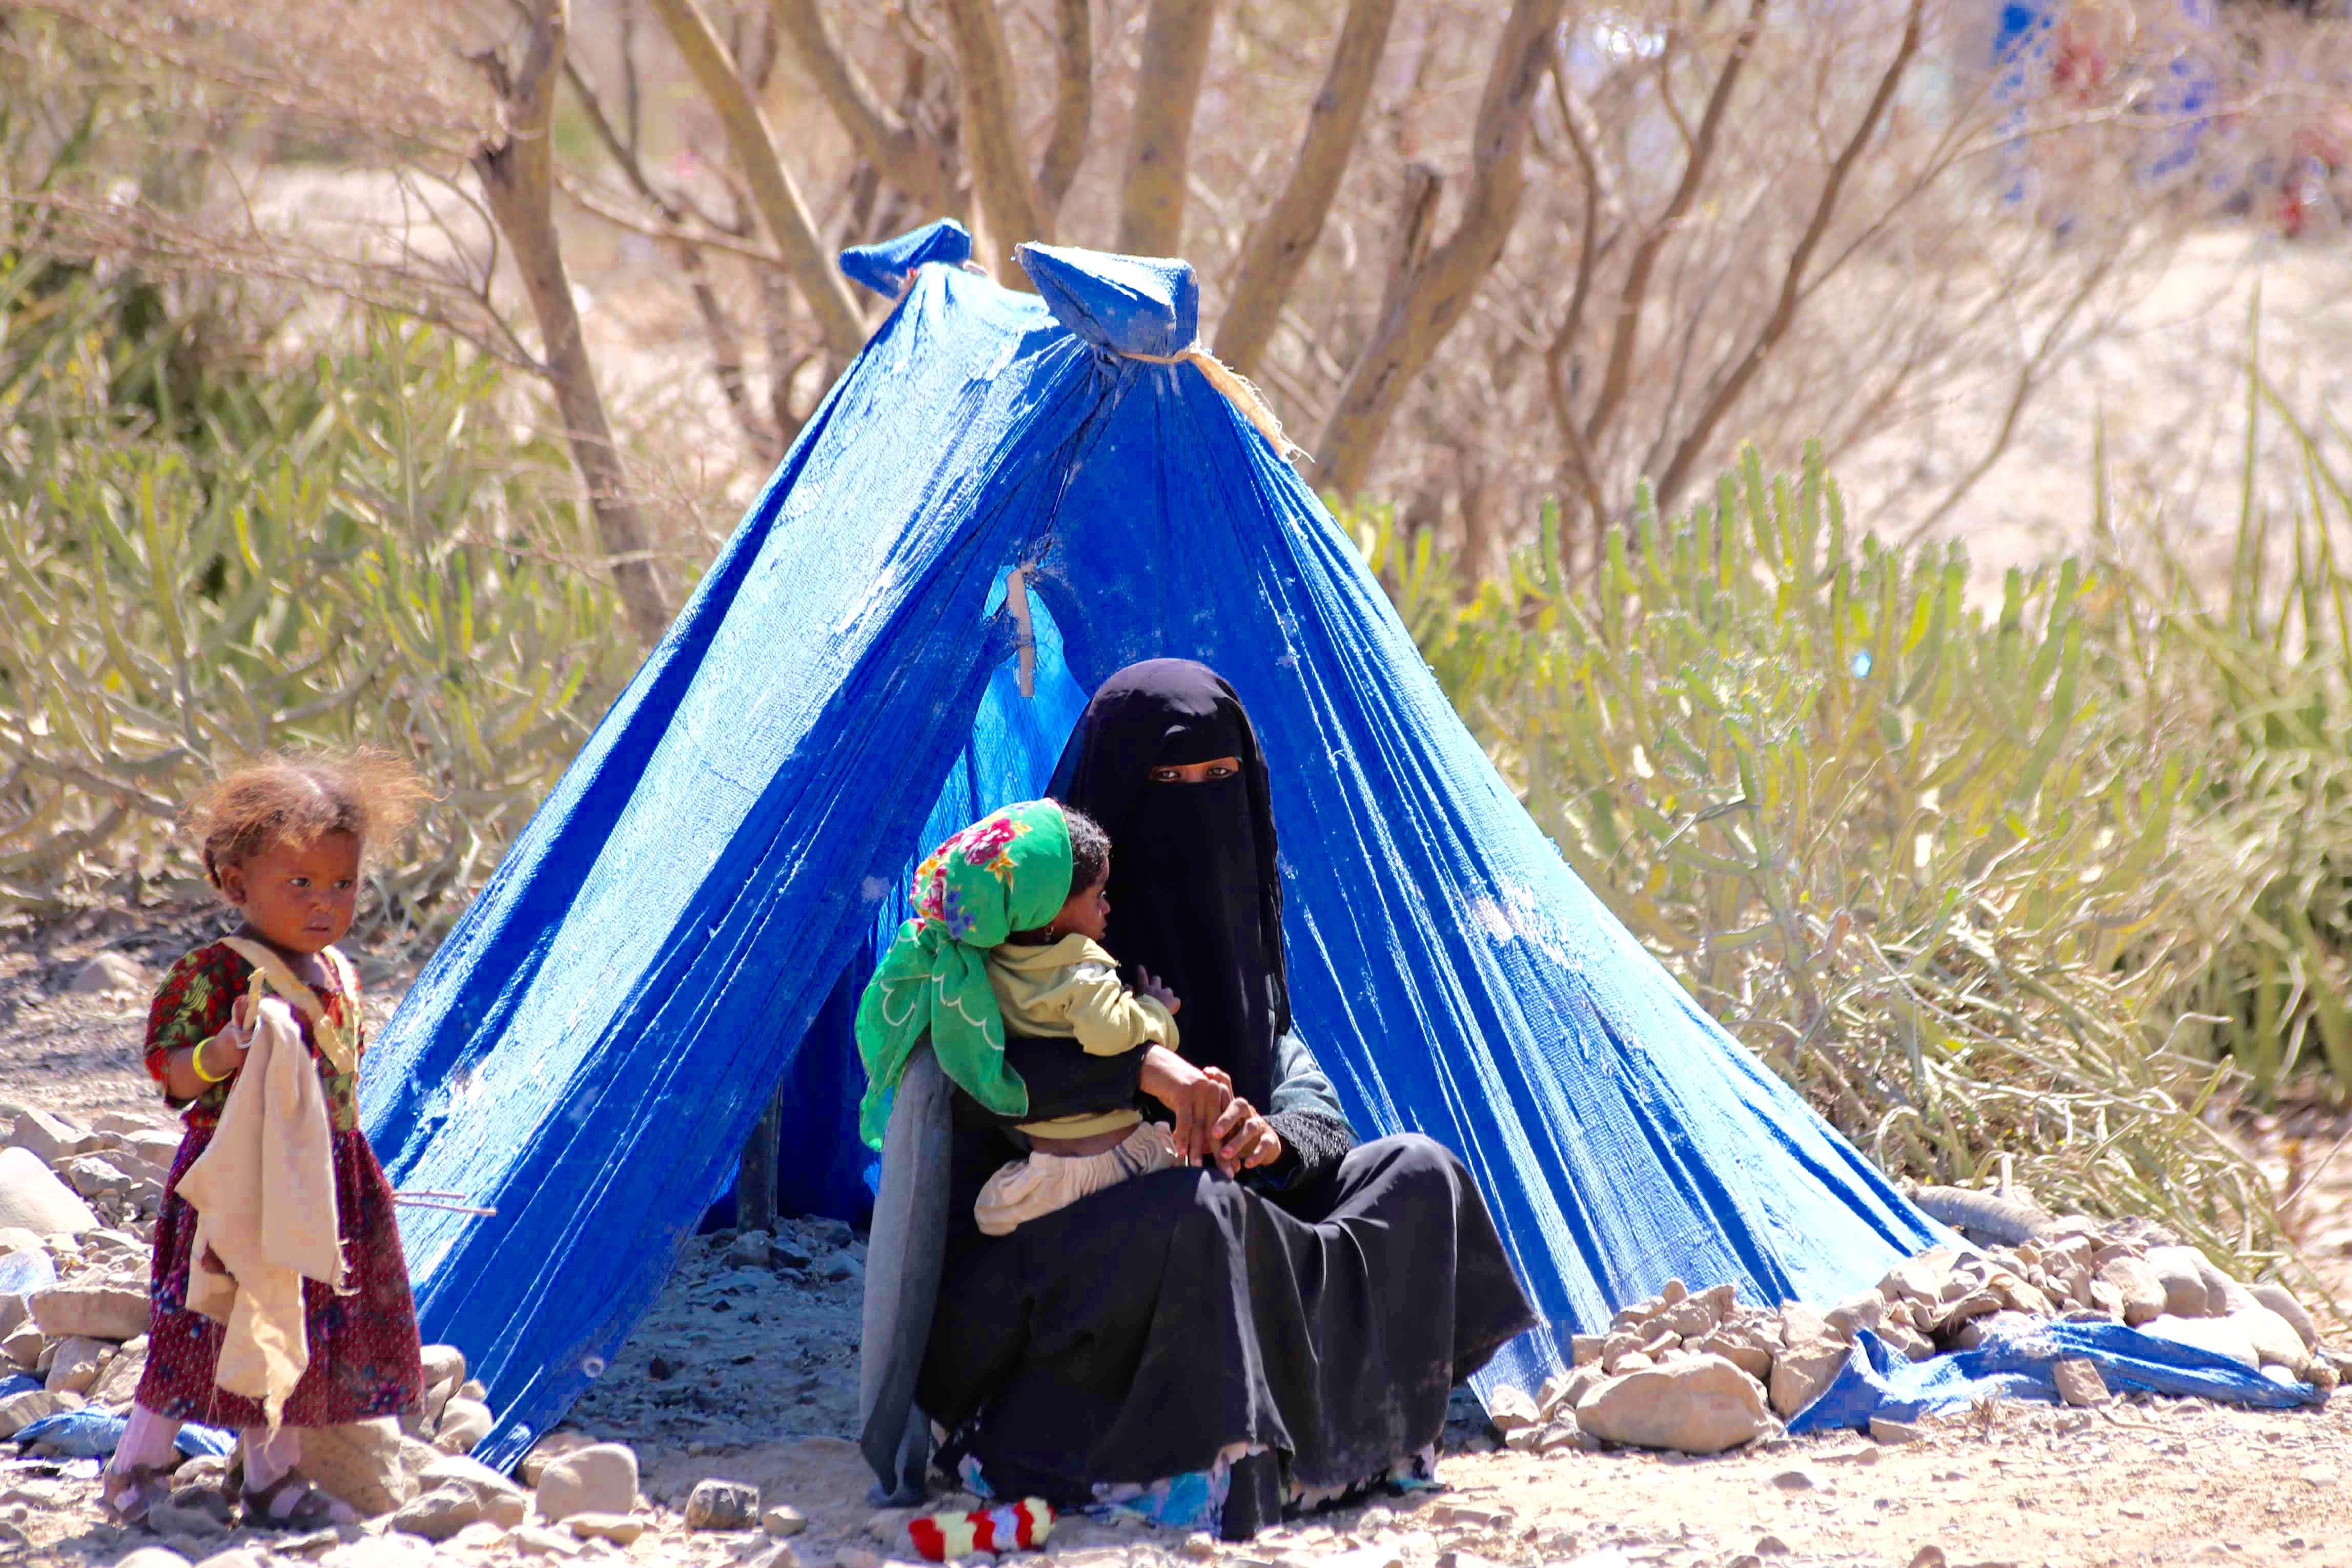 A mother and her children displaced in Yemen